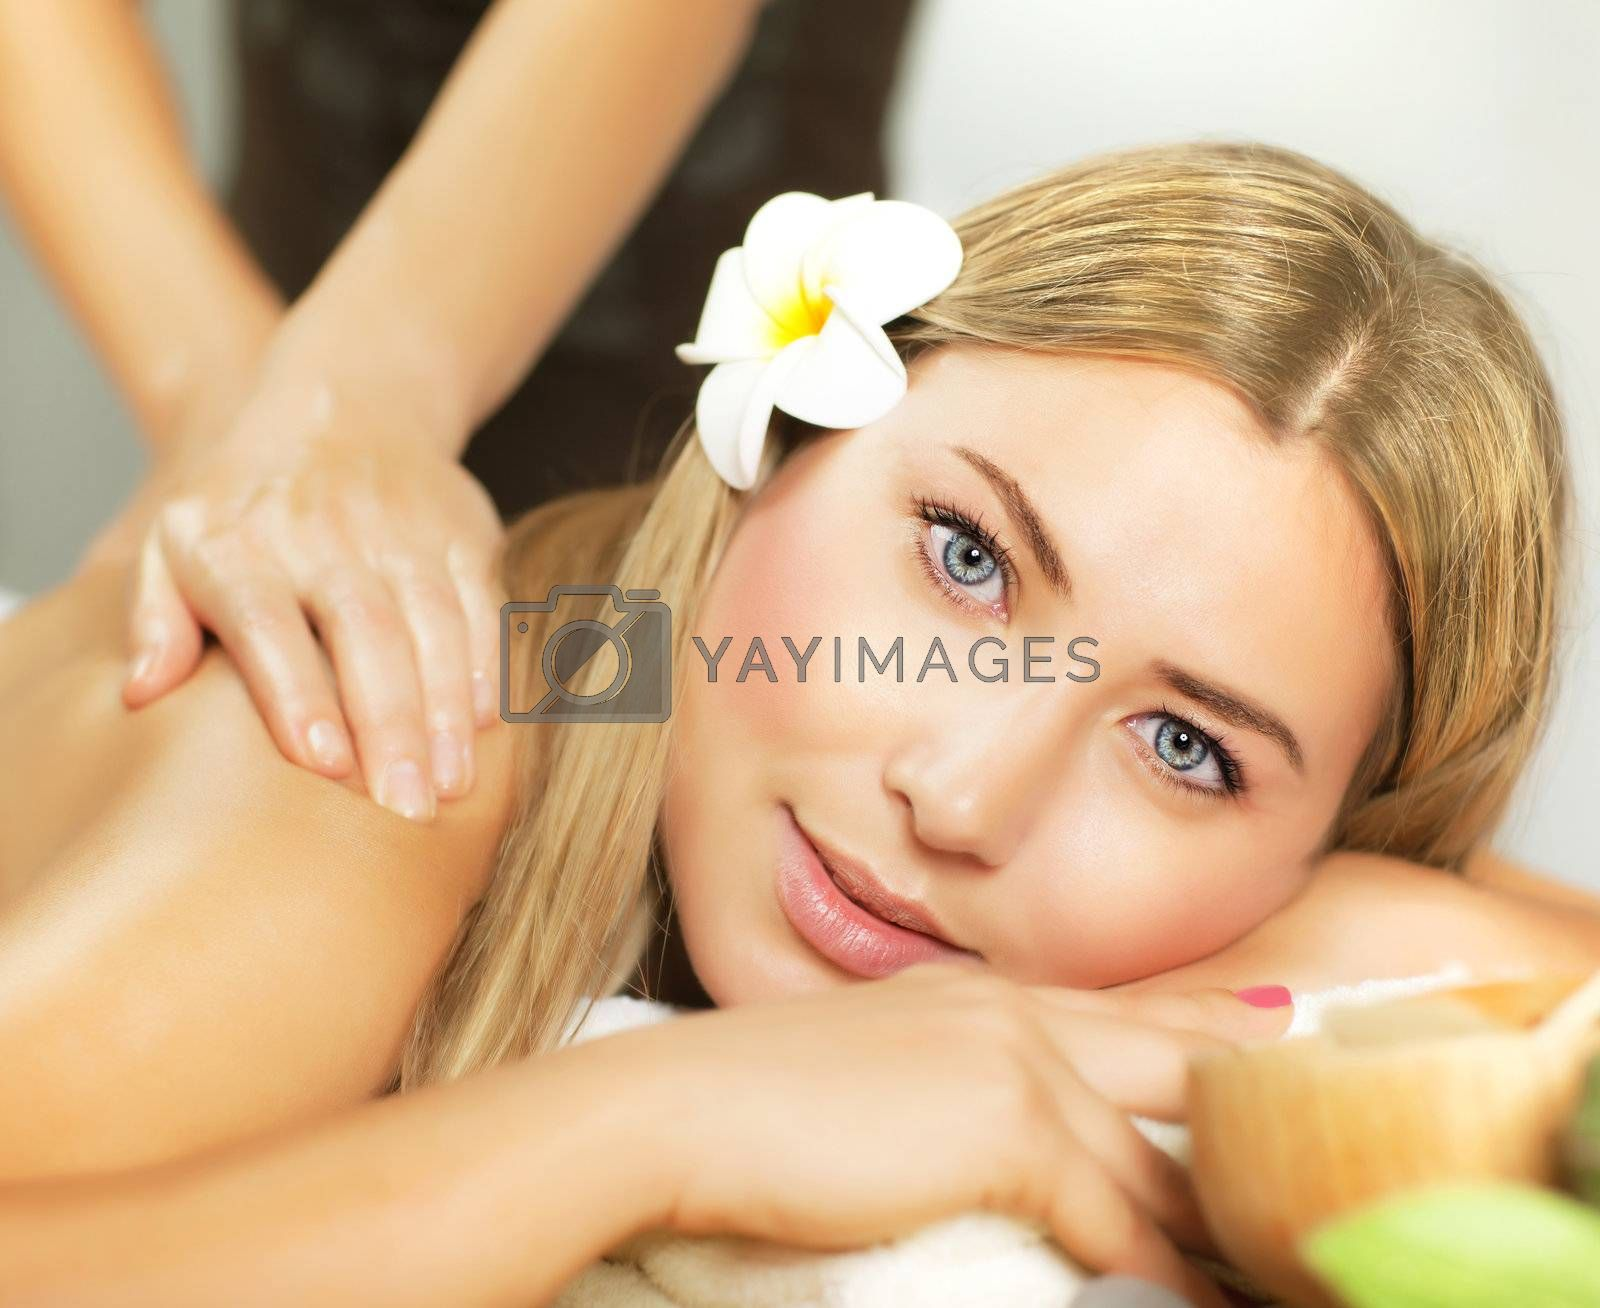 Photo of pretty woman enjoying day spa, cute female lying down on massage table, frangipani flower in hair, alternative treatment, natural cosmetics, luxury spa salon, health care and beauty concept